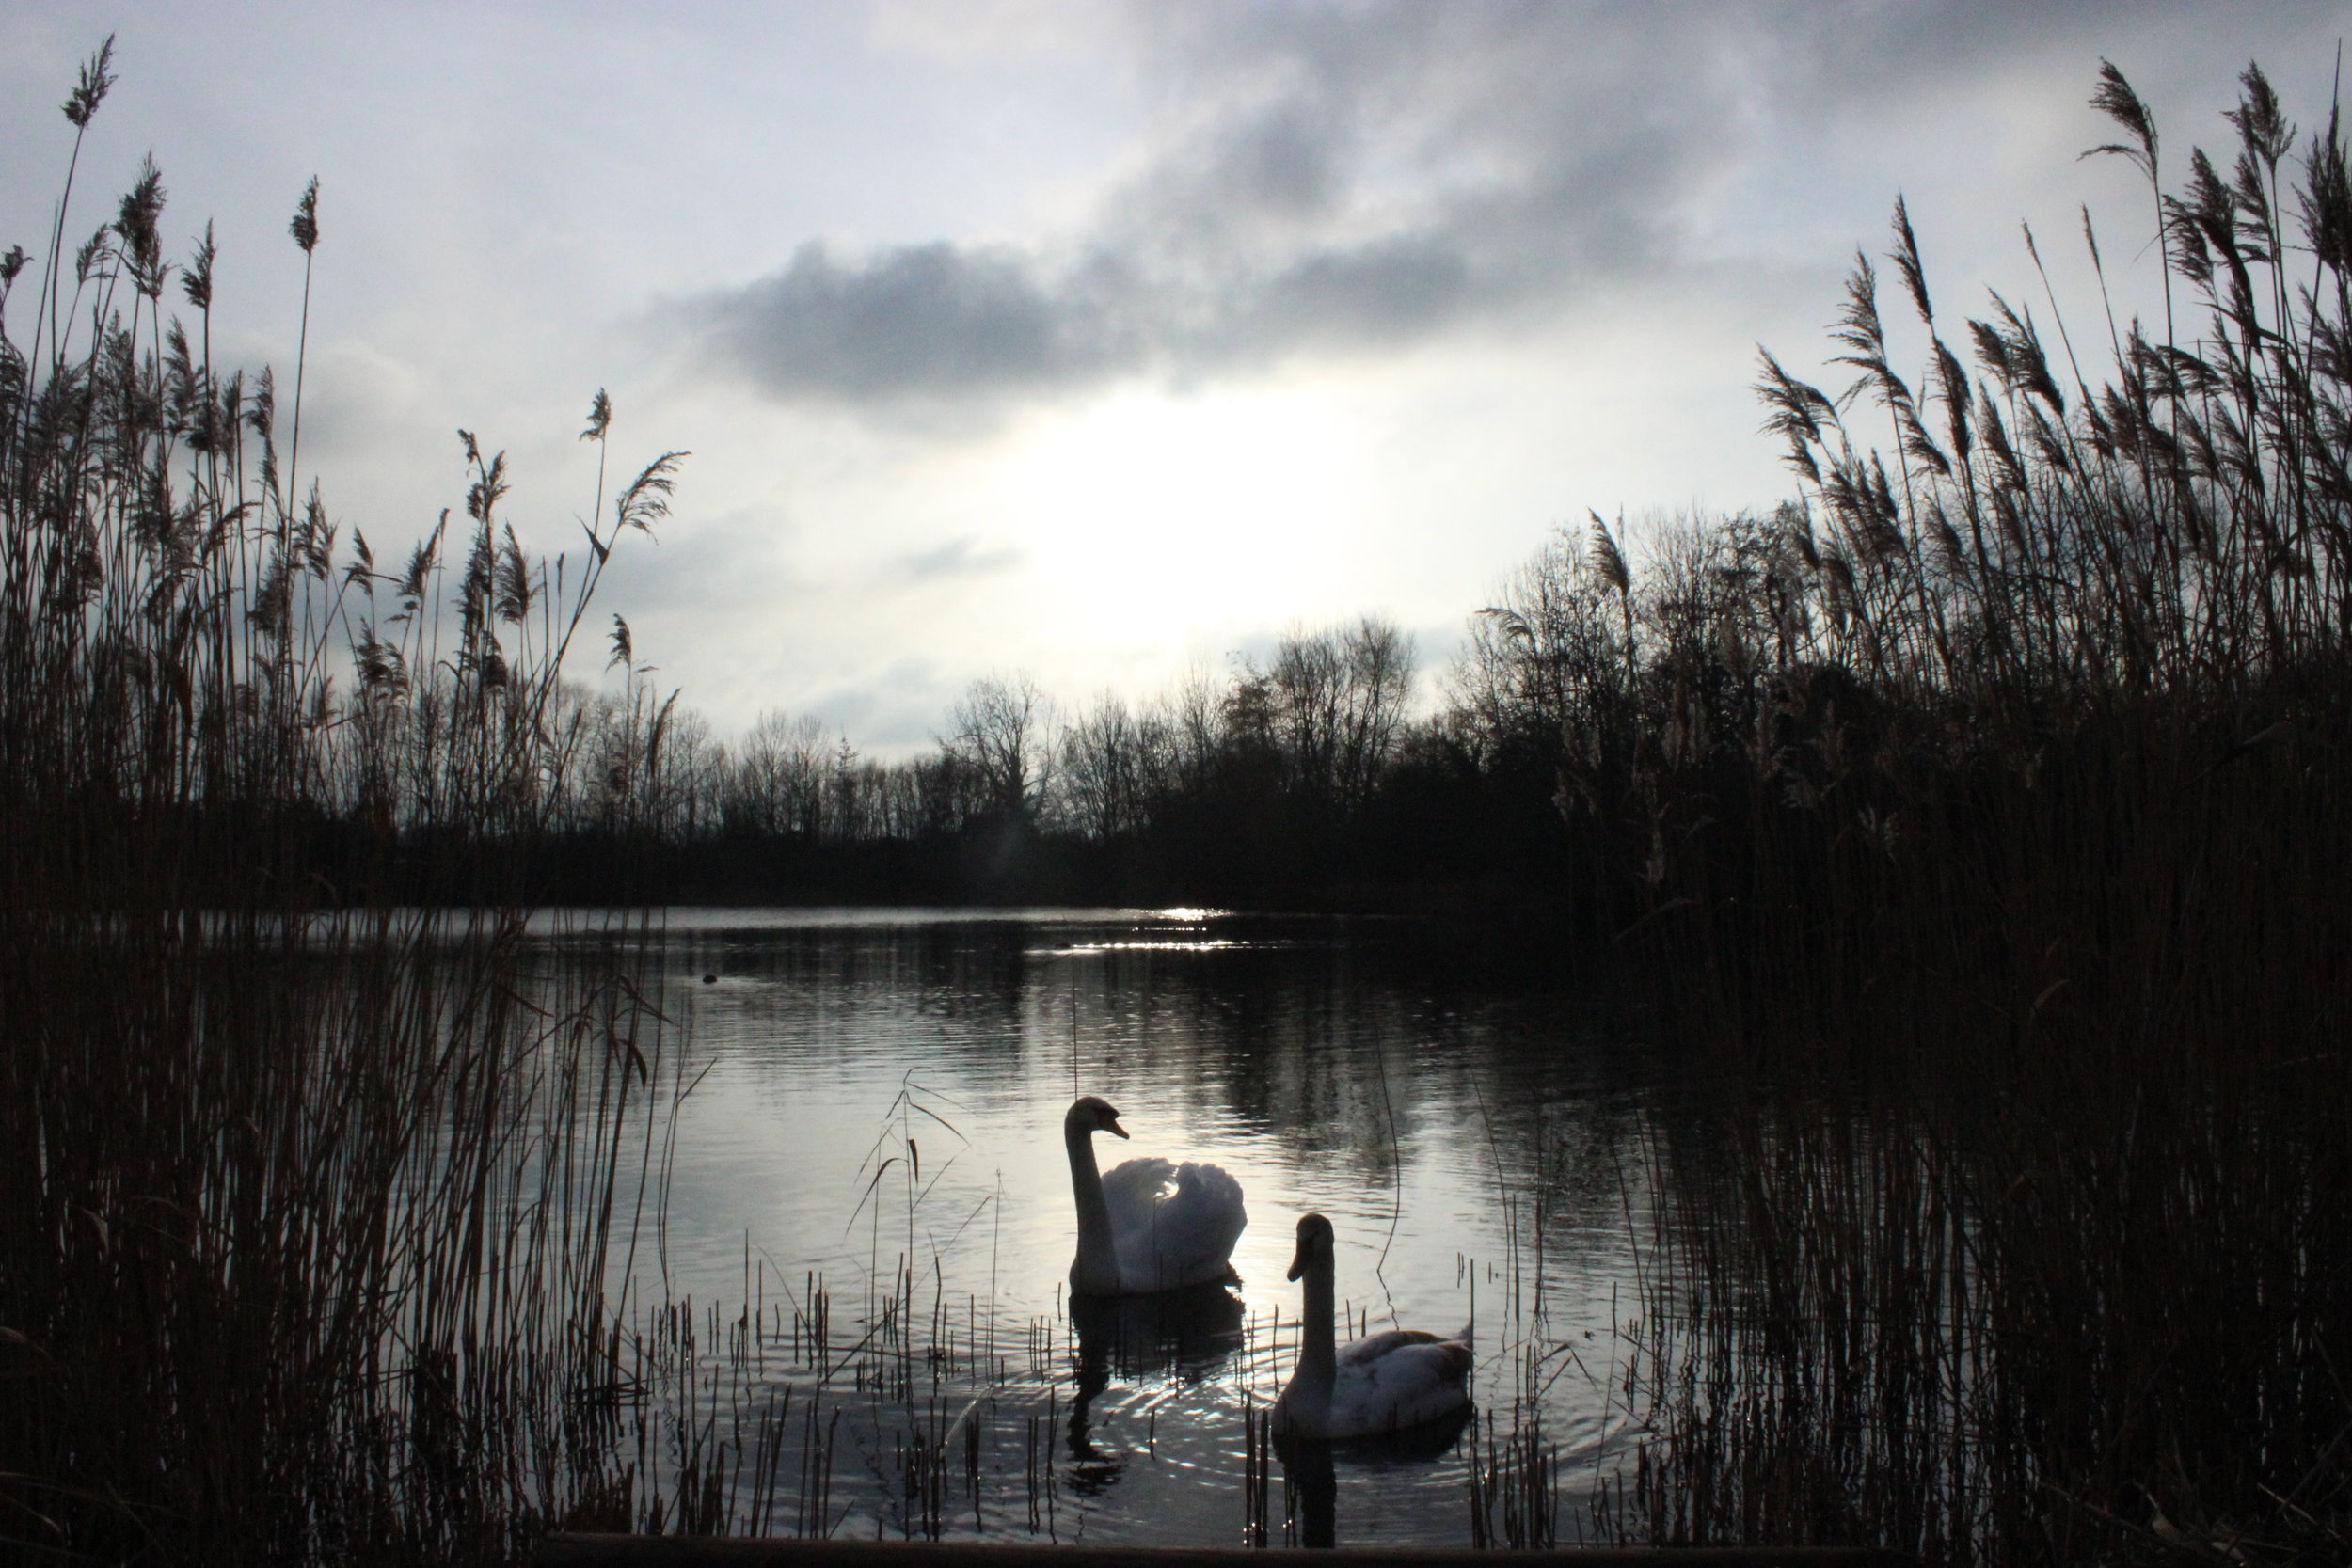 Hounslow - Watch the planes take off from Heathrow, explore an expansive country park and visit an ancient church